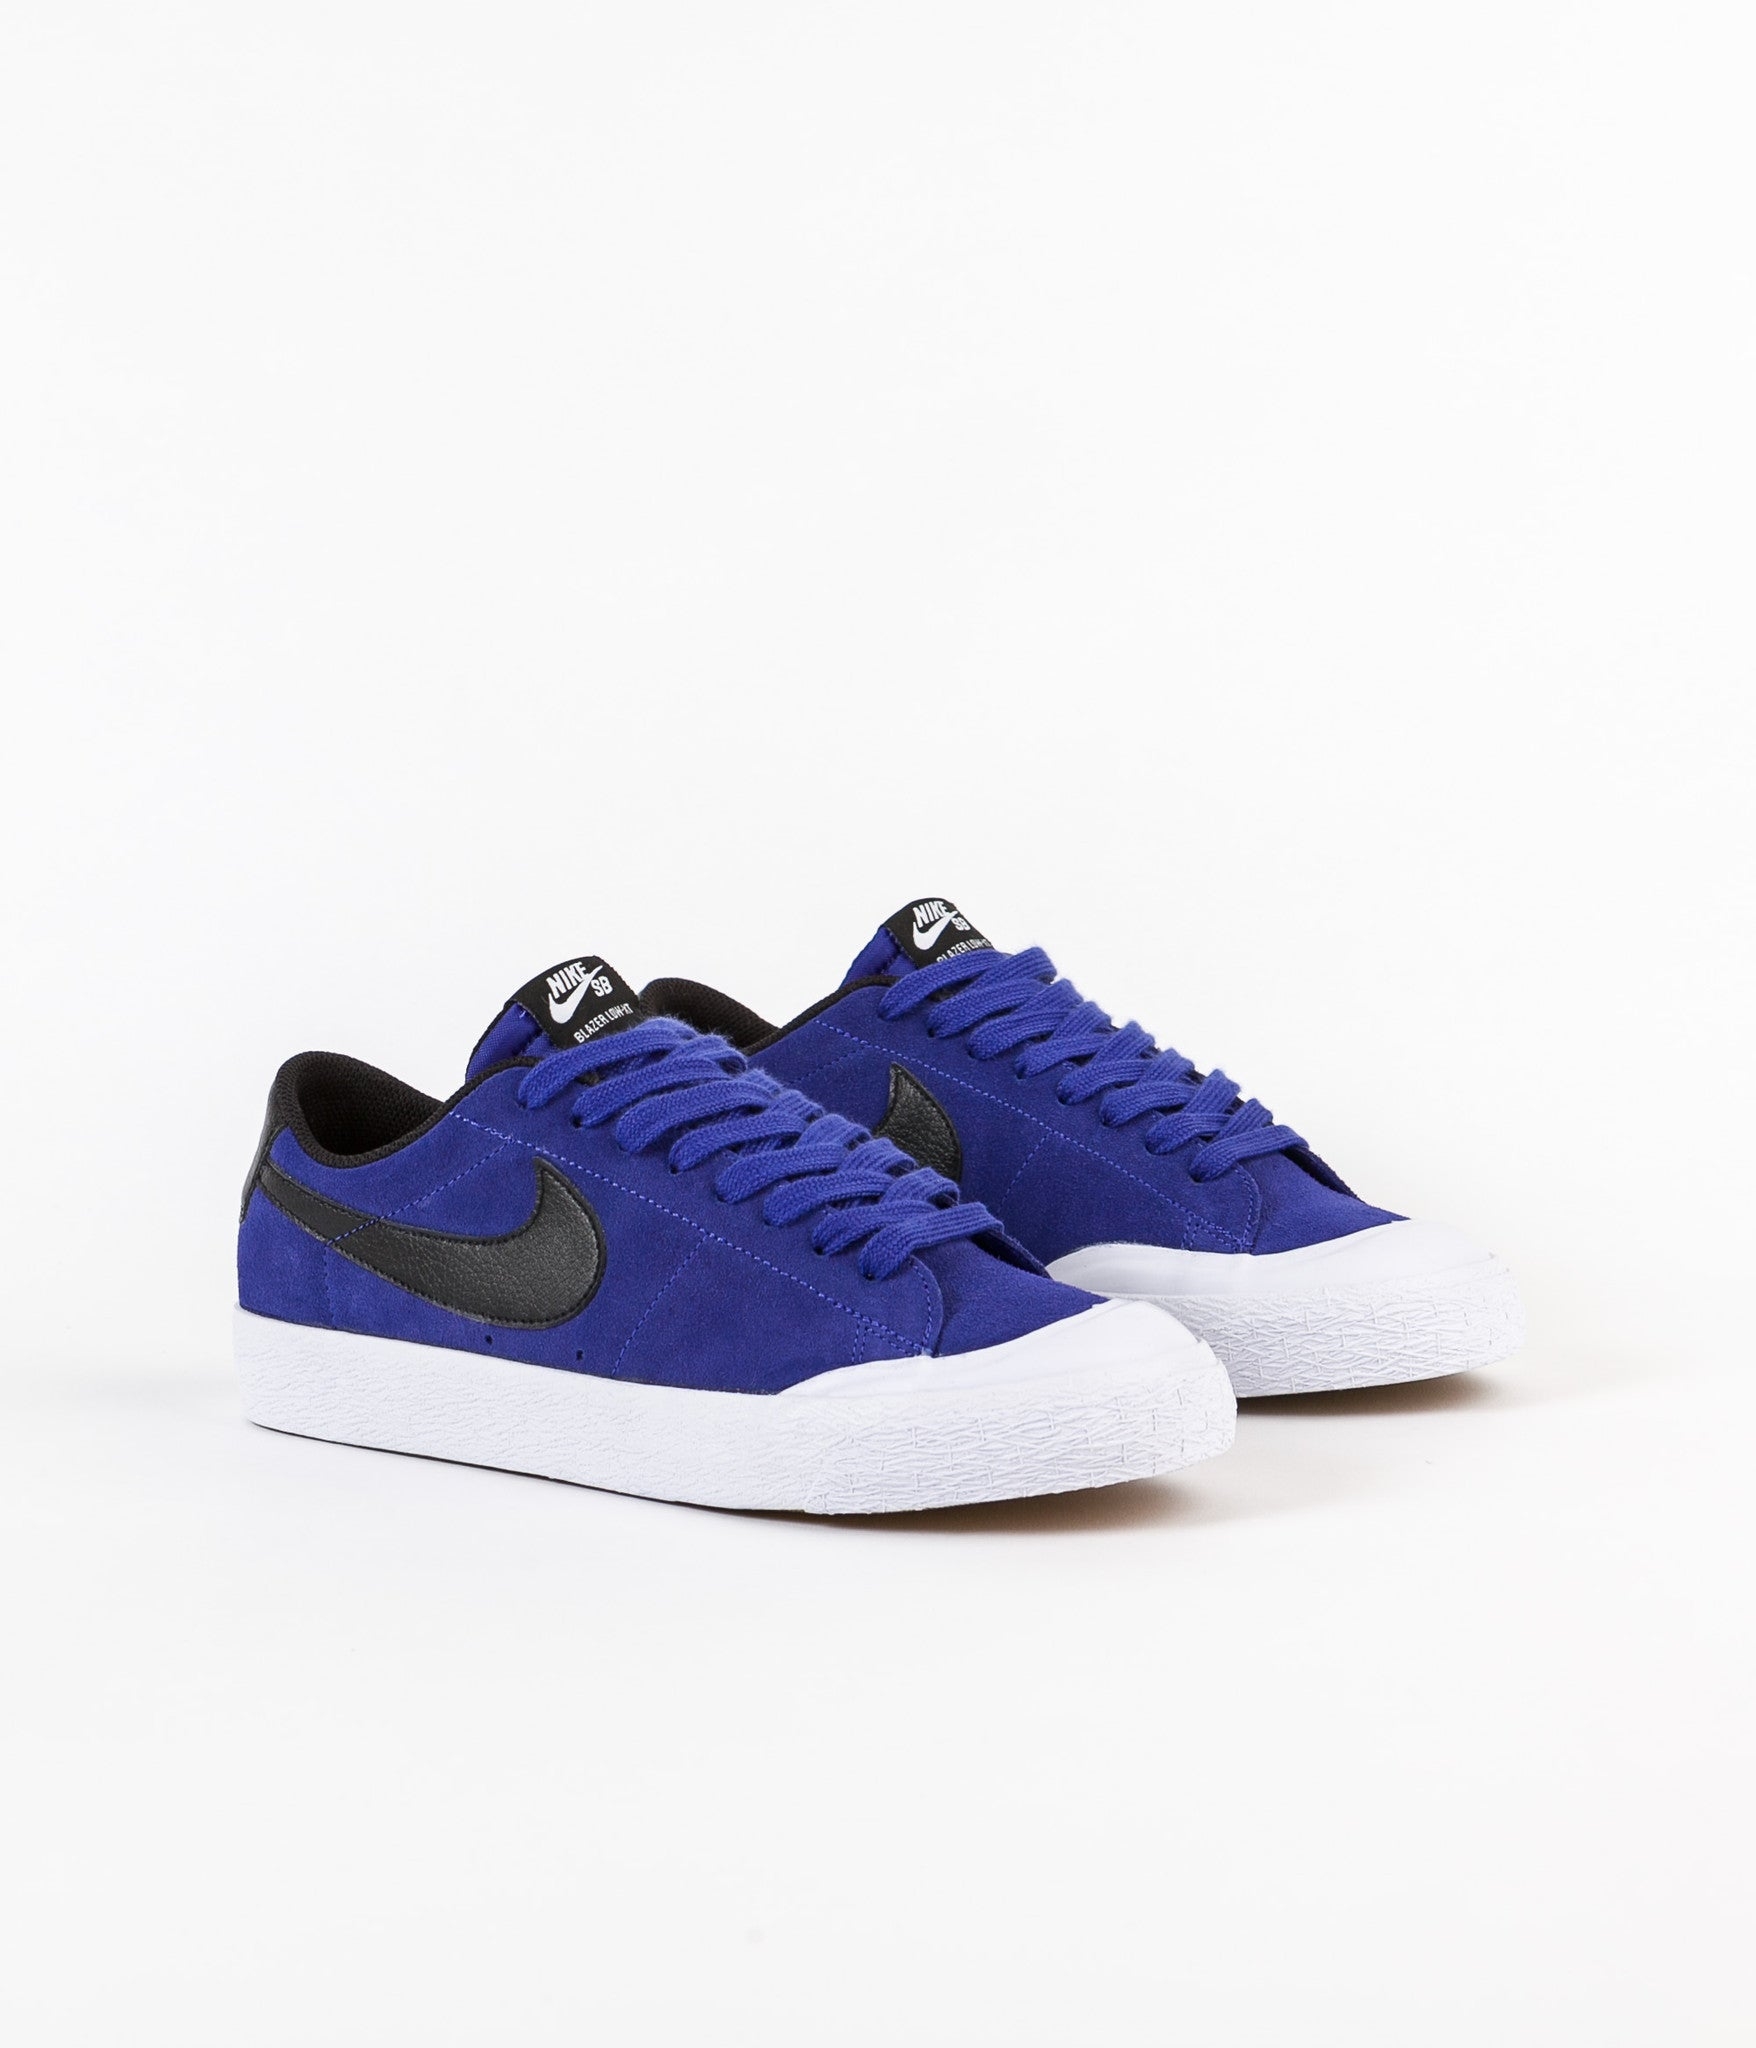 Nike SB Blazer Low XT Shoes - Deep Night / Black - White - Gum Light Brown